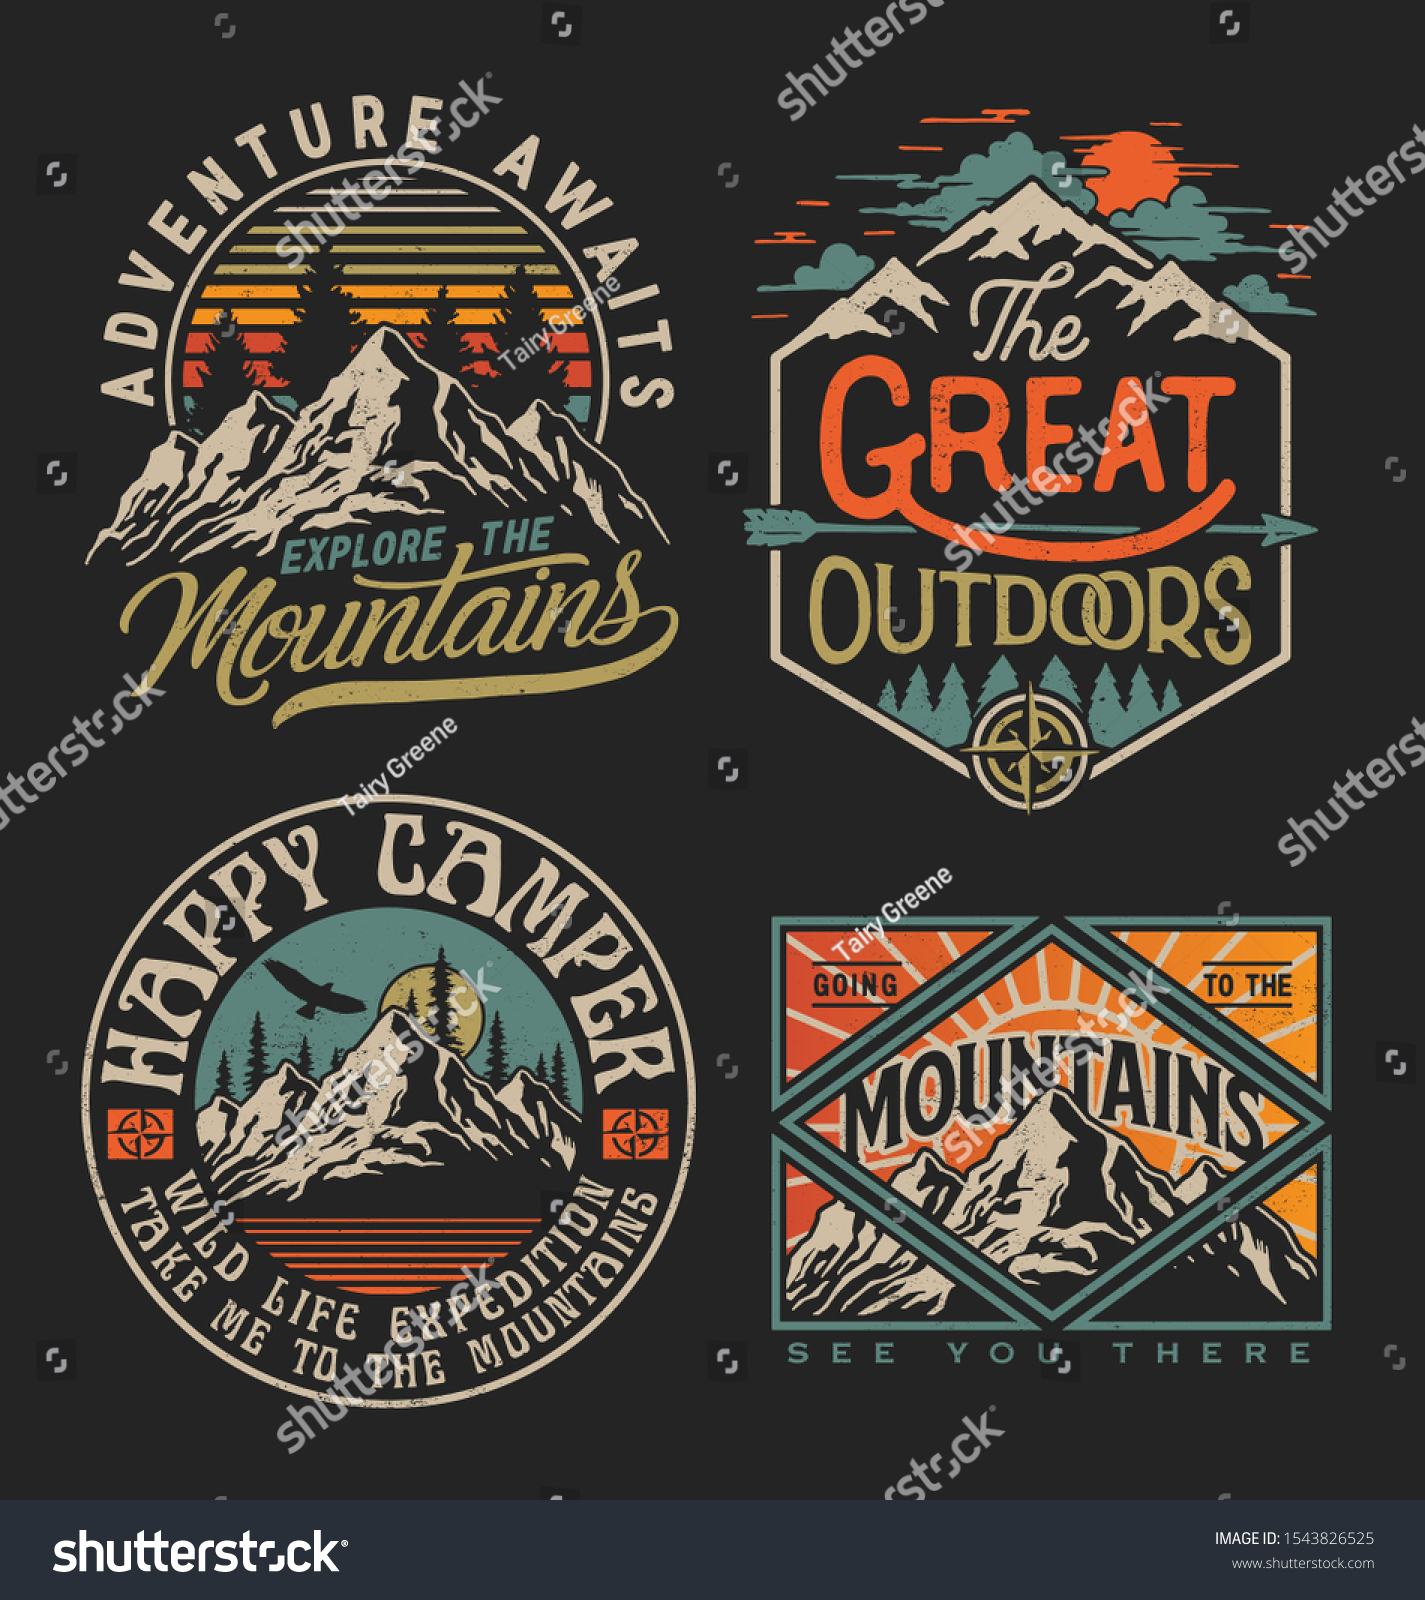 Collection of vintage explorer, wilderness, adventure, camping emblem graphics